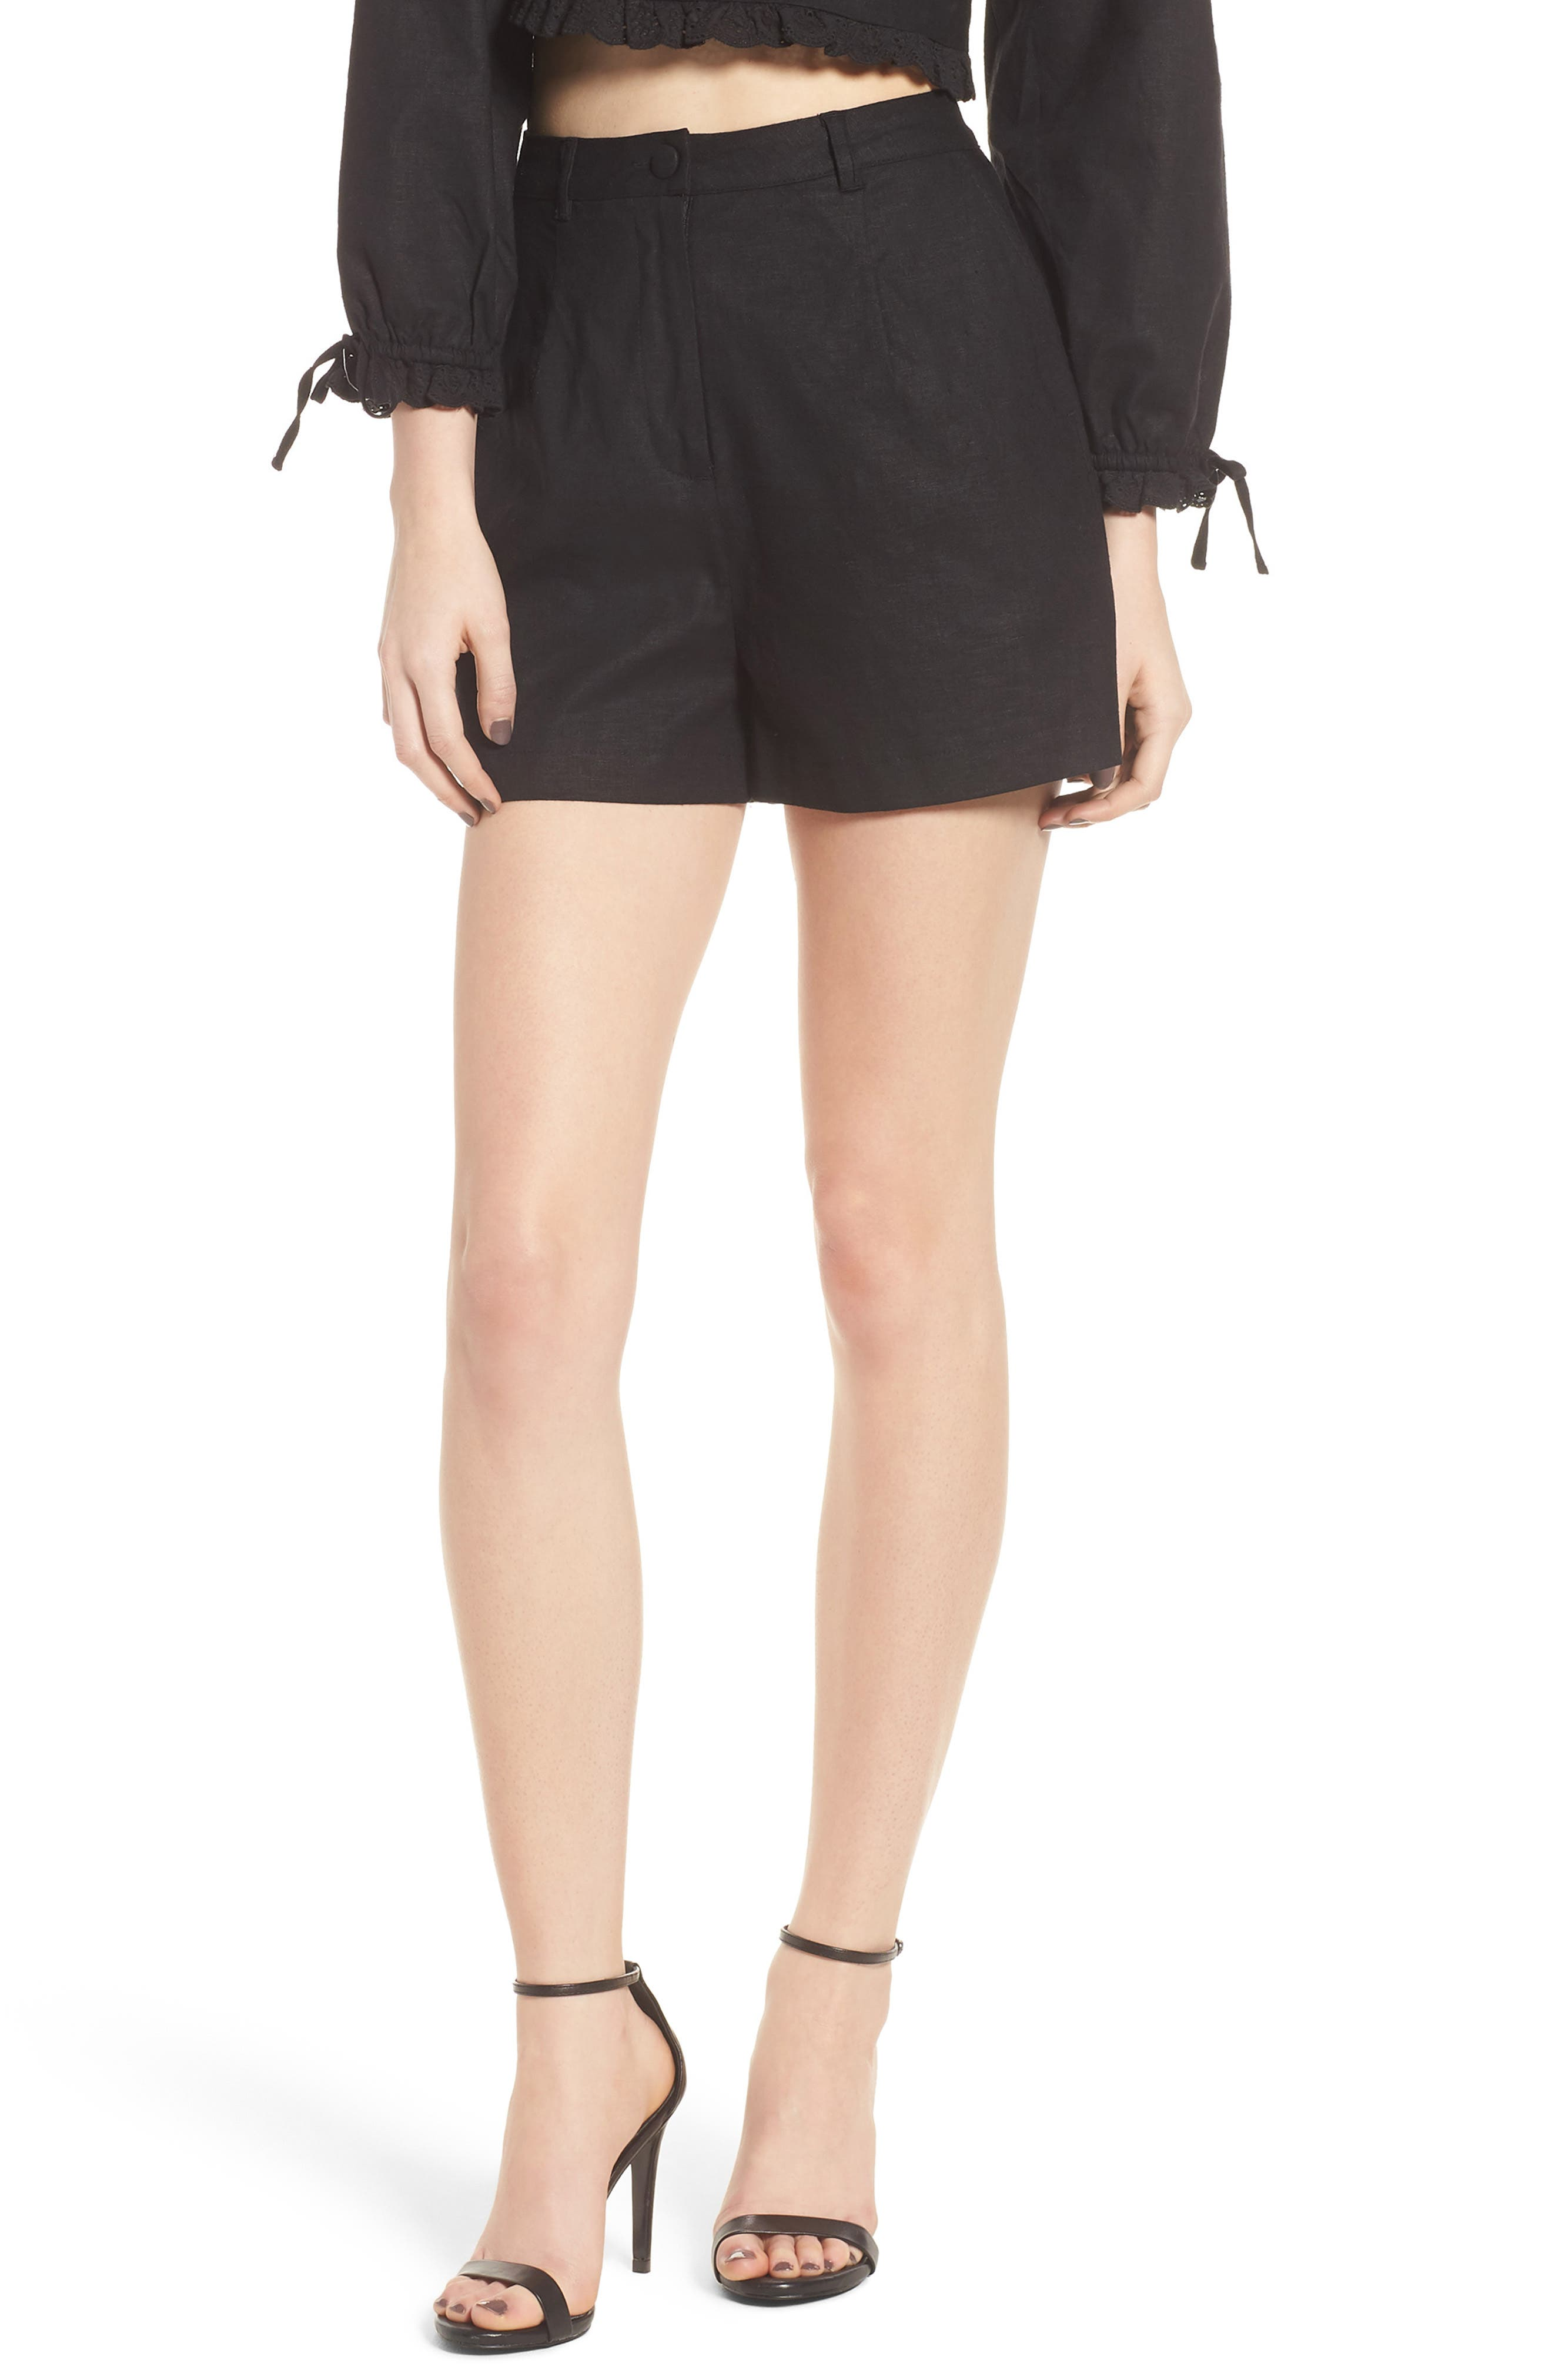 LOVERS + FRIENDS Tracy High Waist Shorts, Main, color, 001